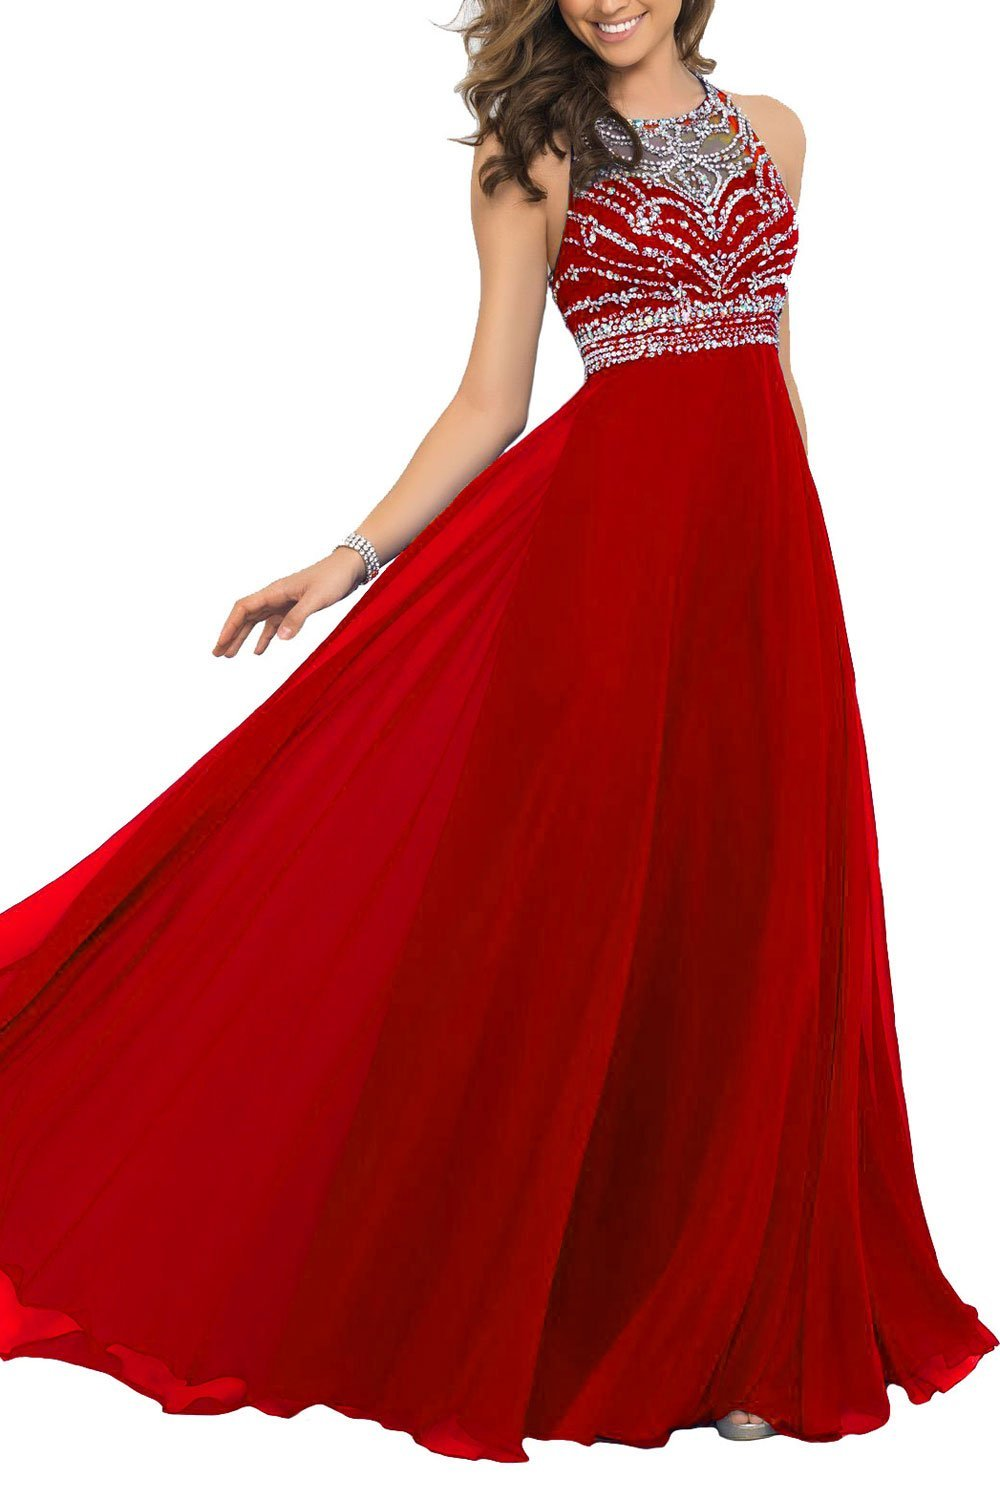 red floor length chiffon wedding dress